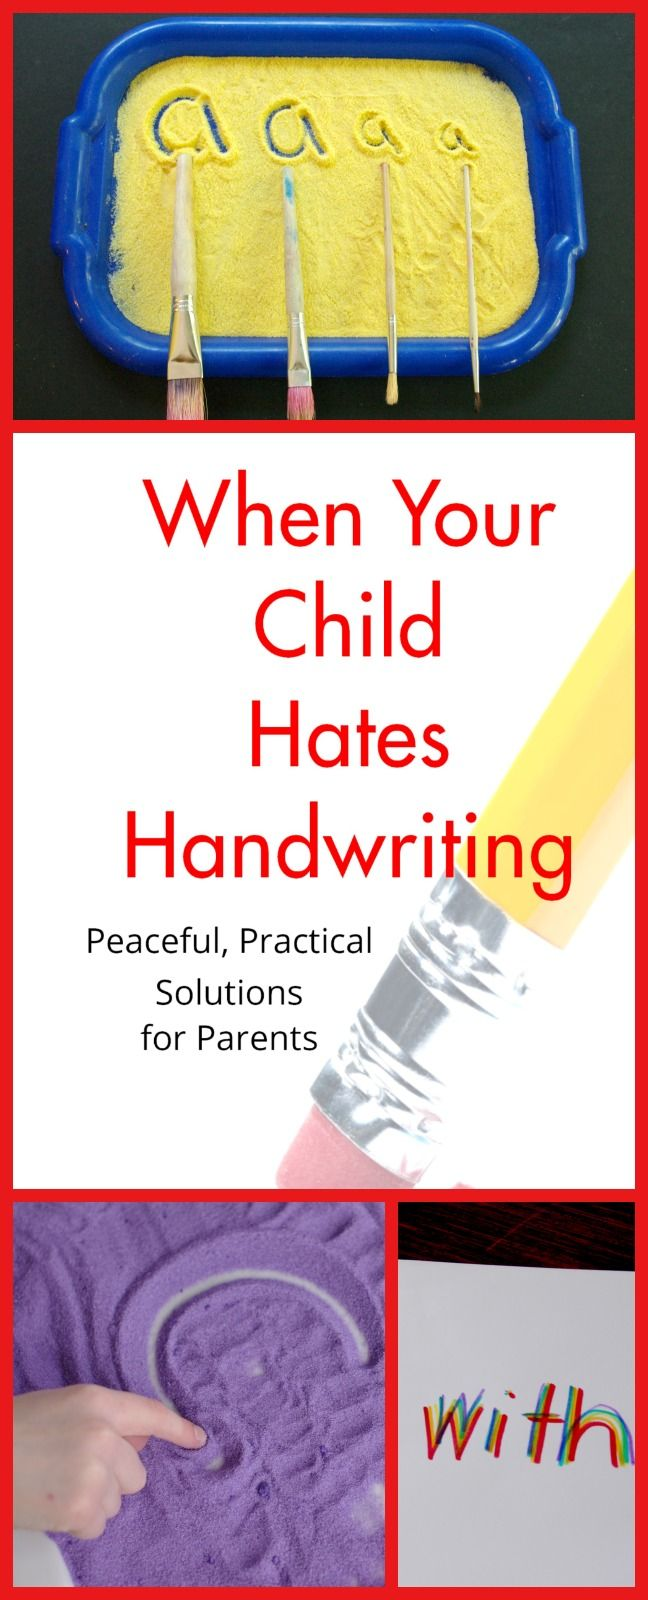 Uncategorized Free Make Your Own Handwriting Worksheets 25 best ideas about handwriting worksheets on pinterest free and frustrated kids tons of resources here to make practice peaceful and